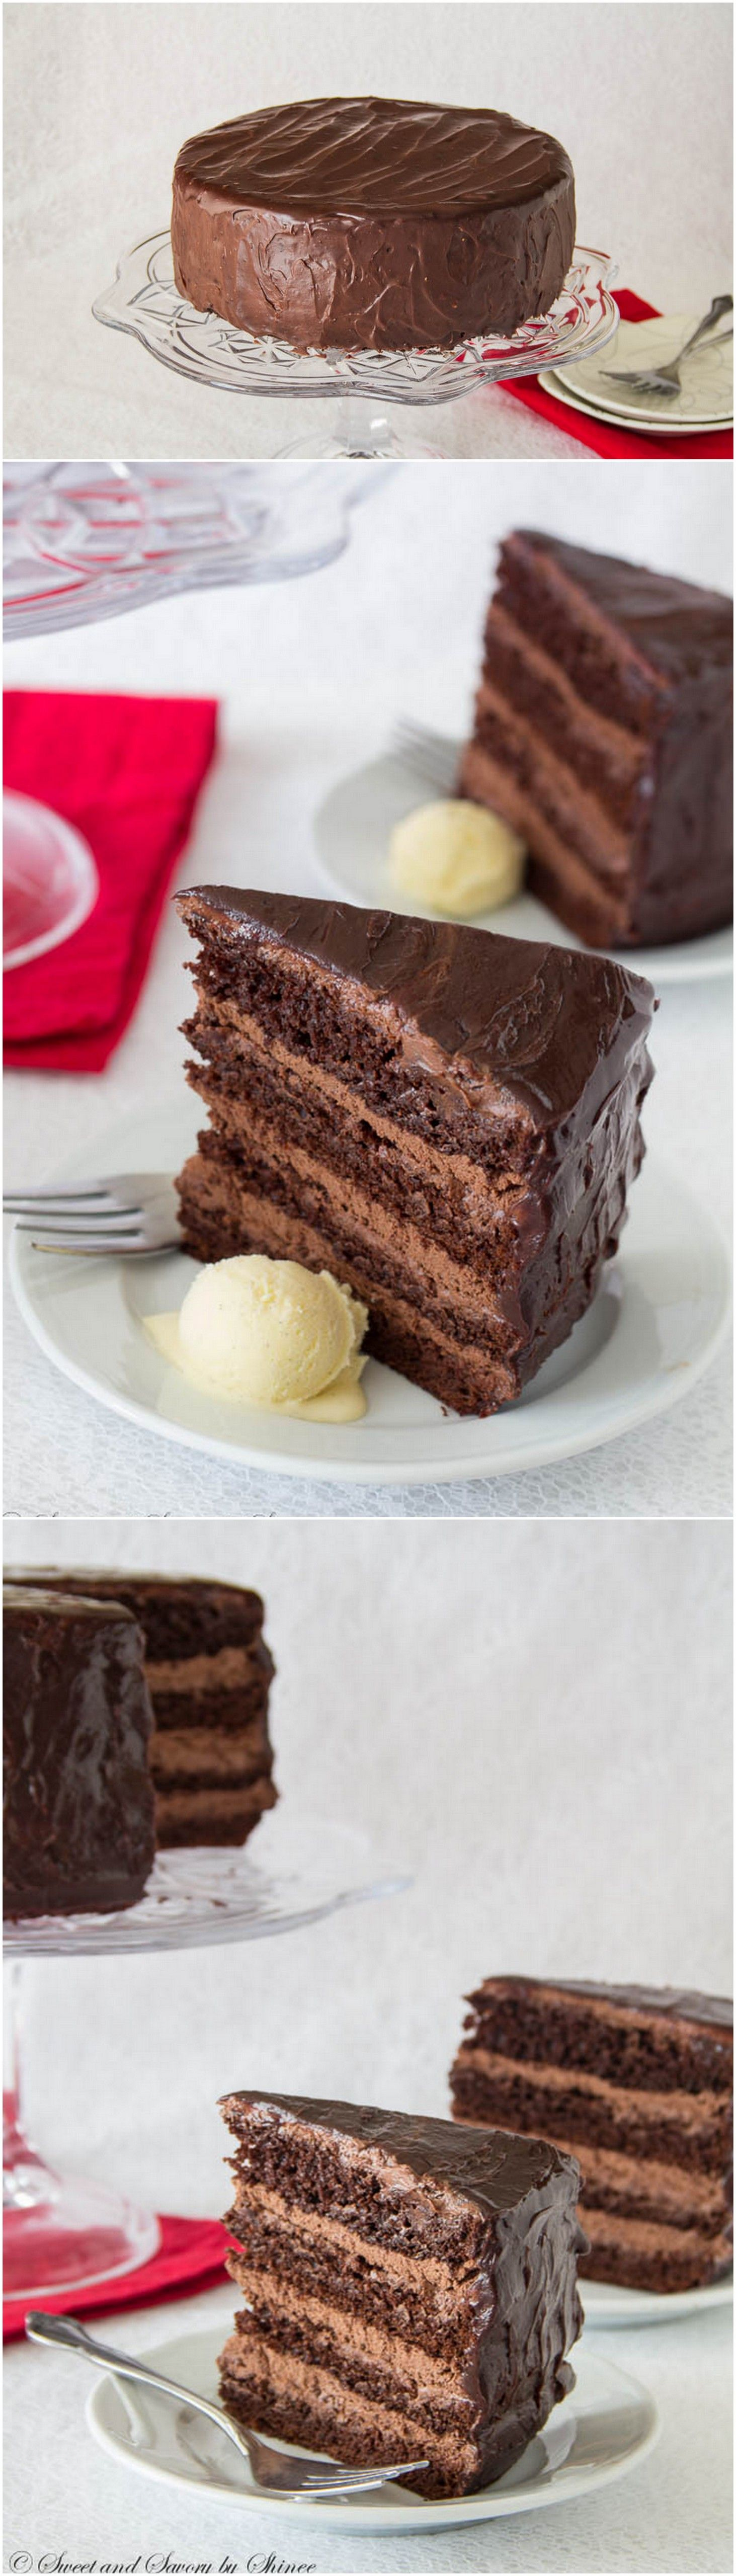 Simple chocolate mousse recipe for cake filling